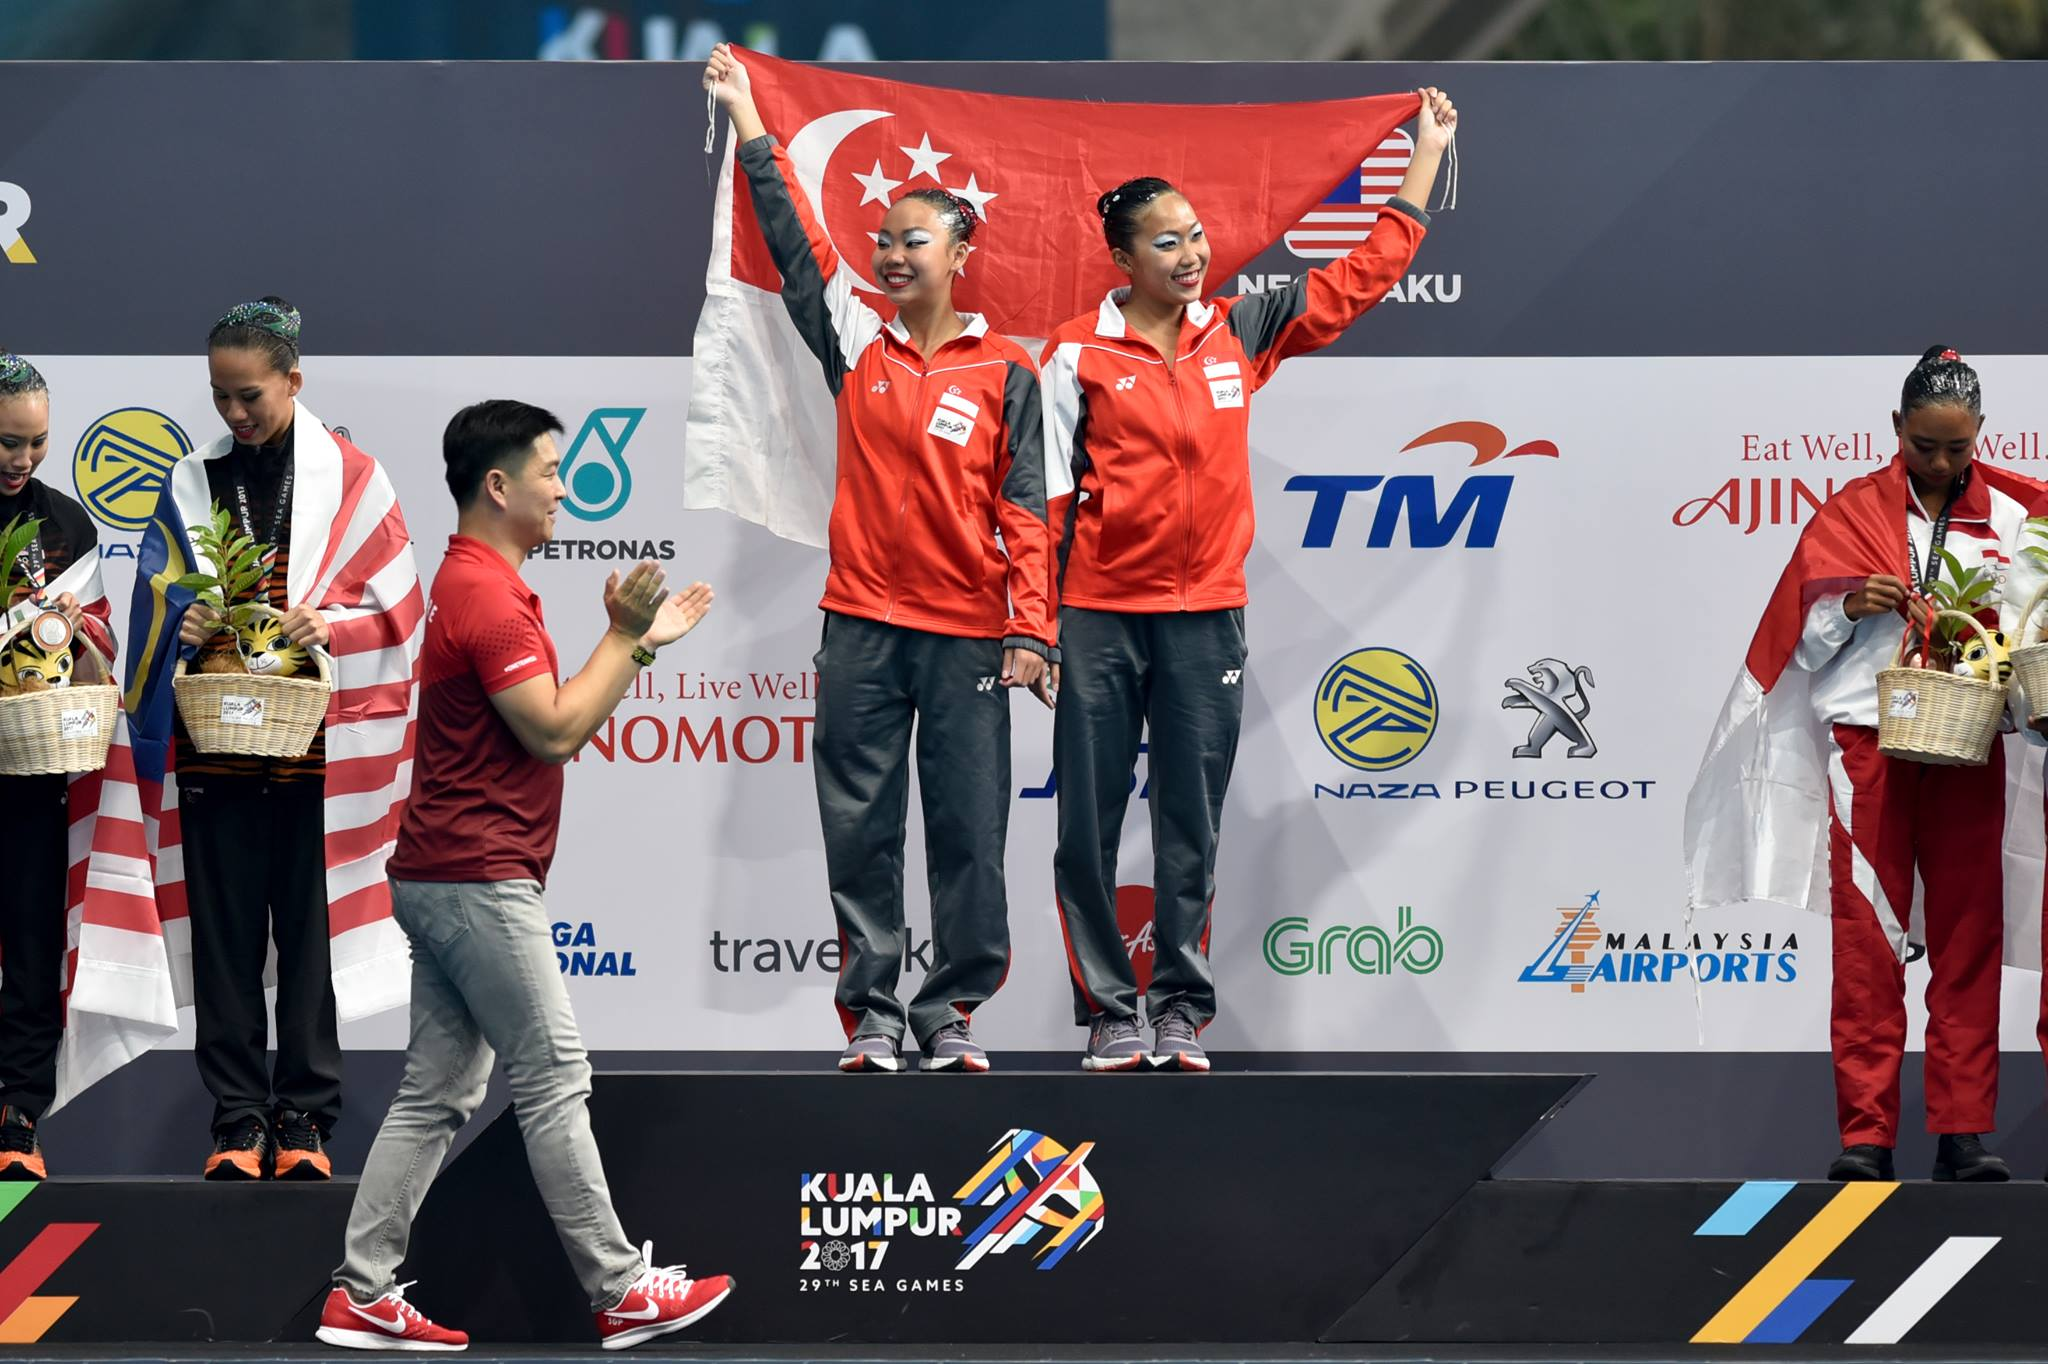 18 August: Team Singapore Synchronised Swimming Duet Technical Routine Finals - Gold medallists Miya Yong and Debbie Soh at the Victory Ceremony. Photo courtesy: Andy Pascua